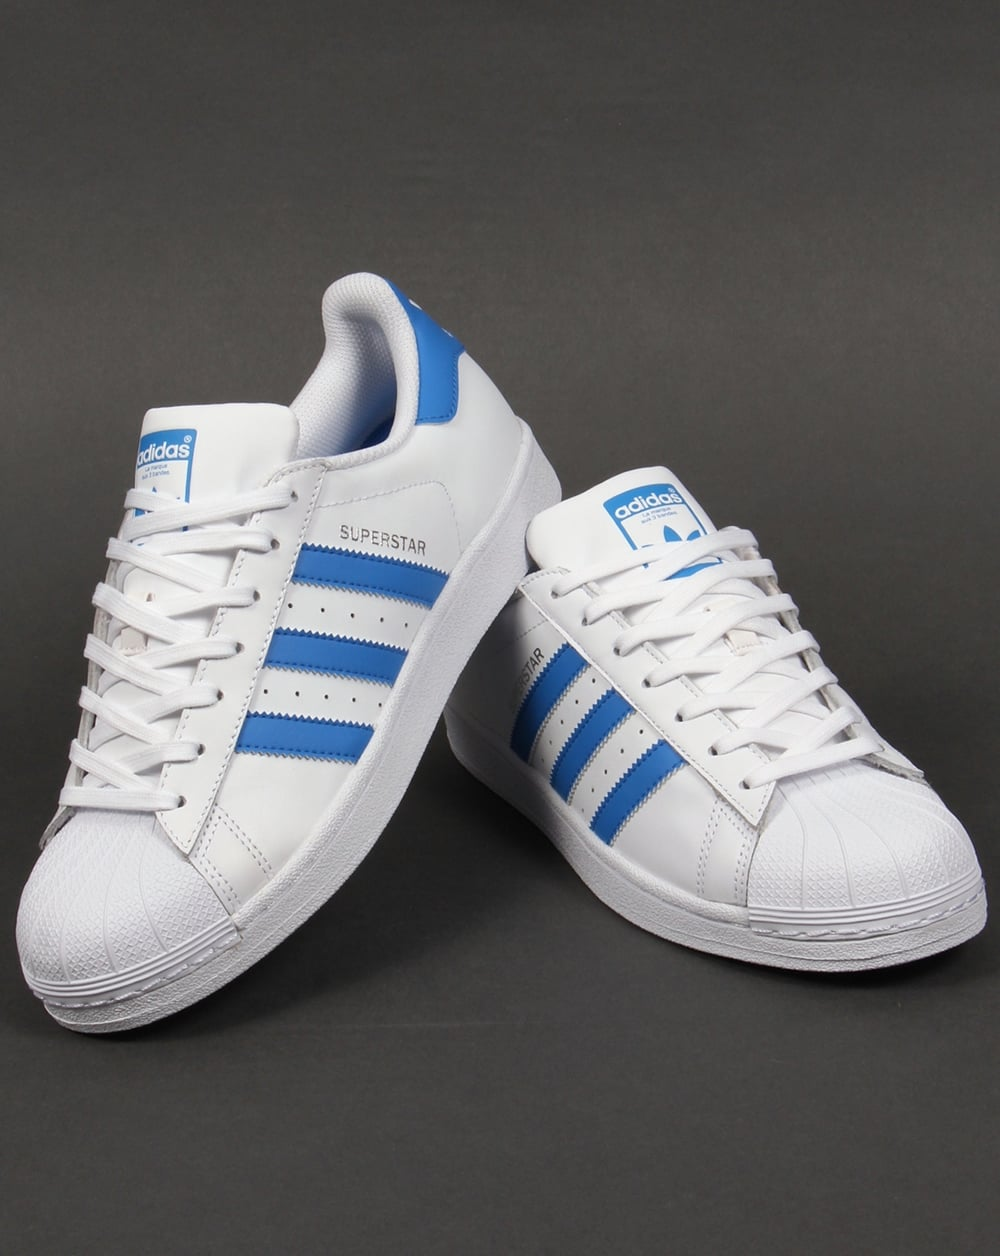 adidas superstar ray